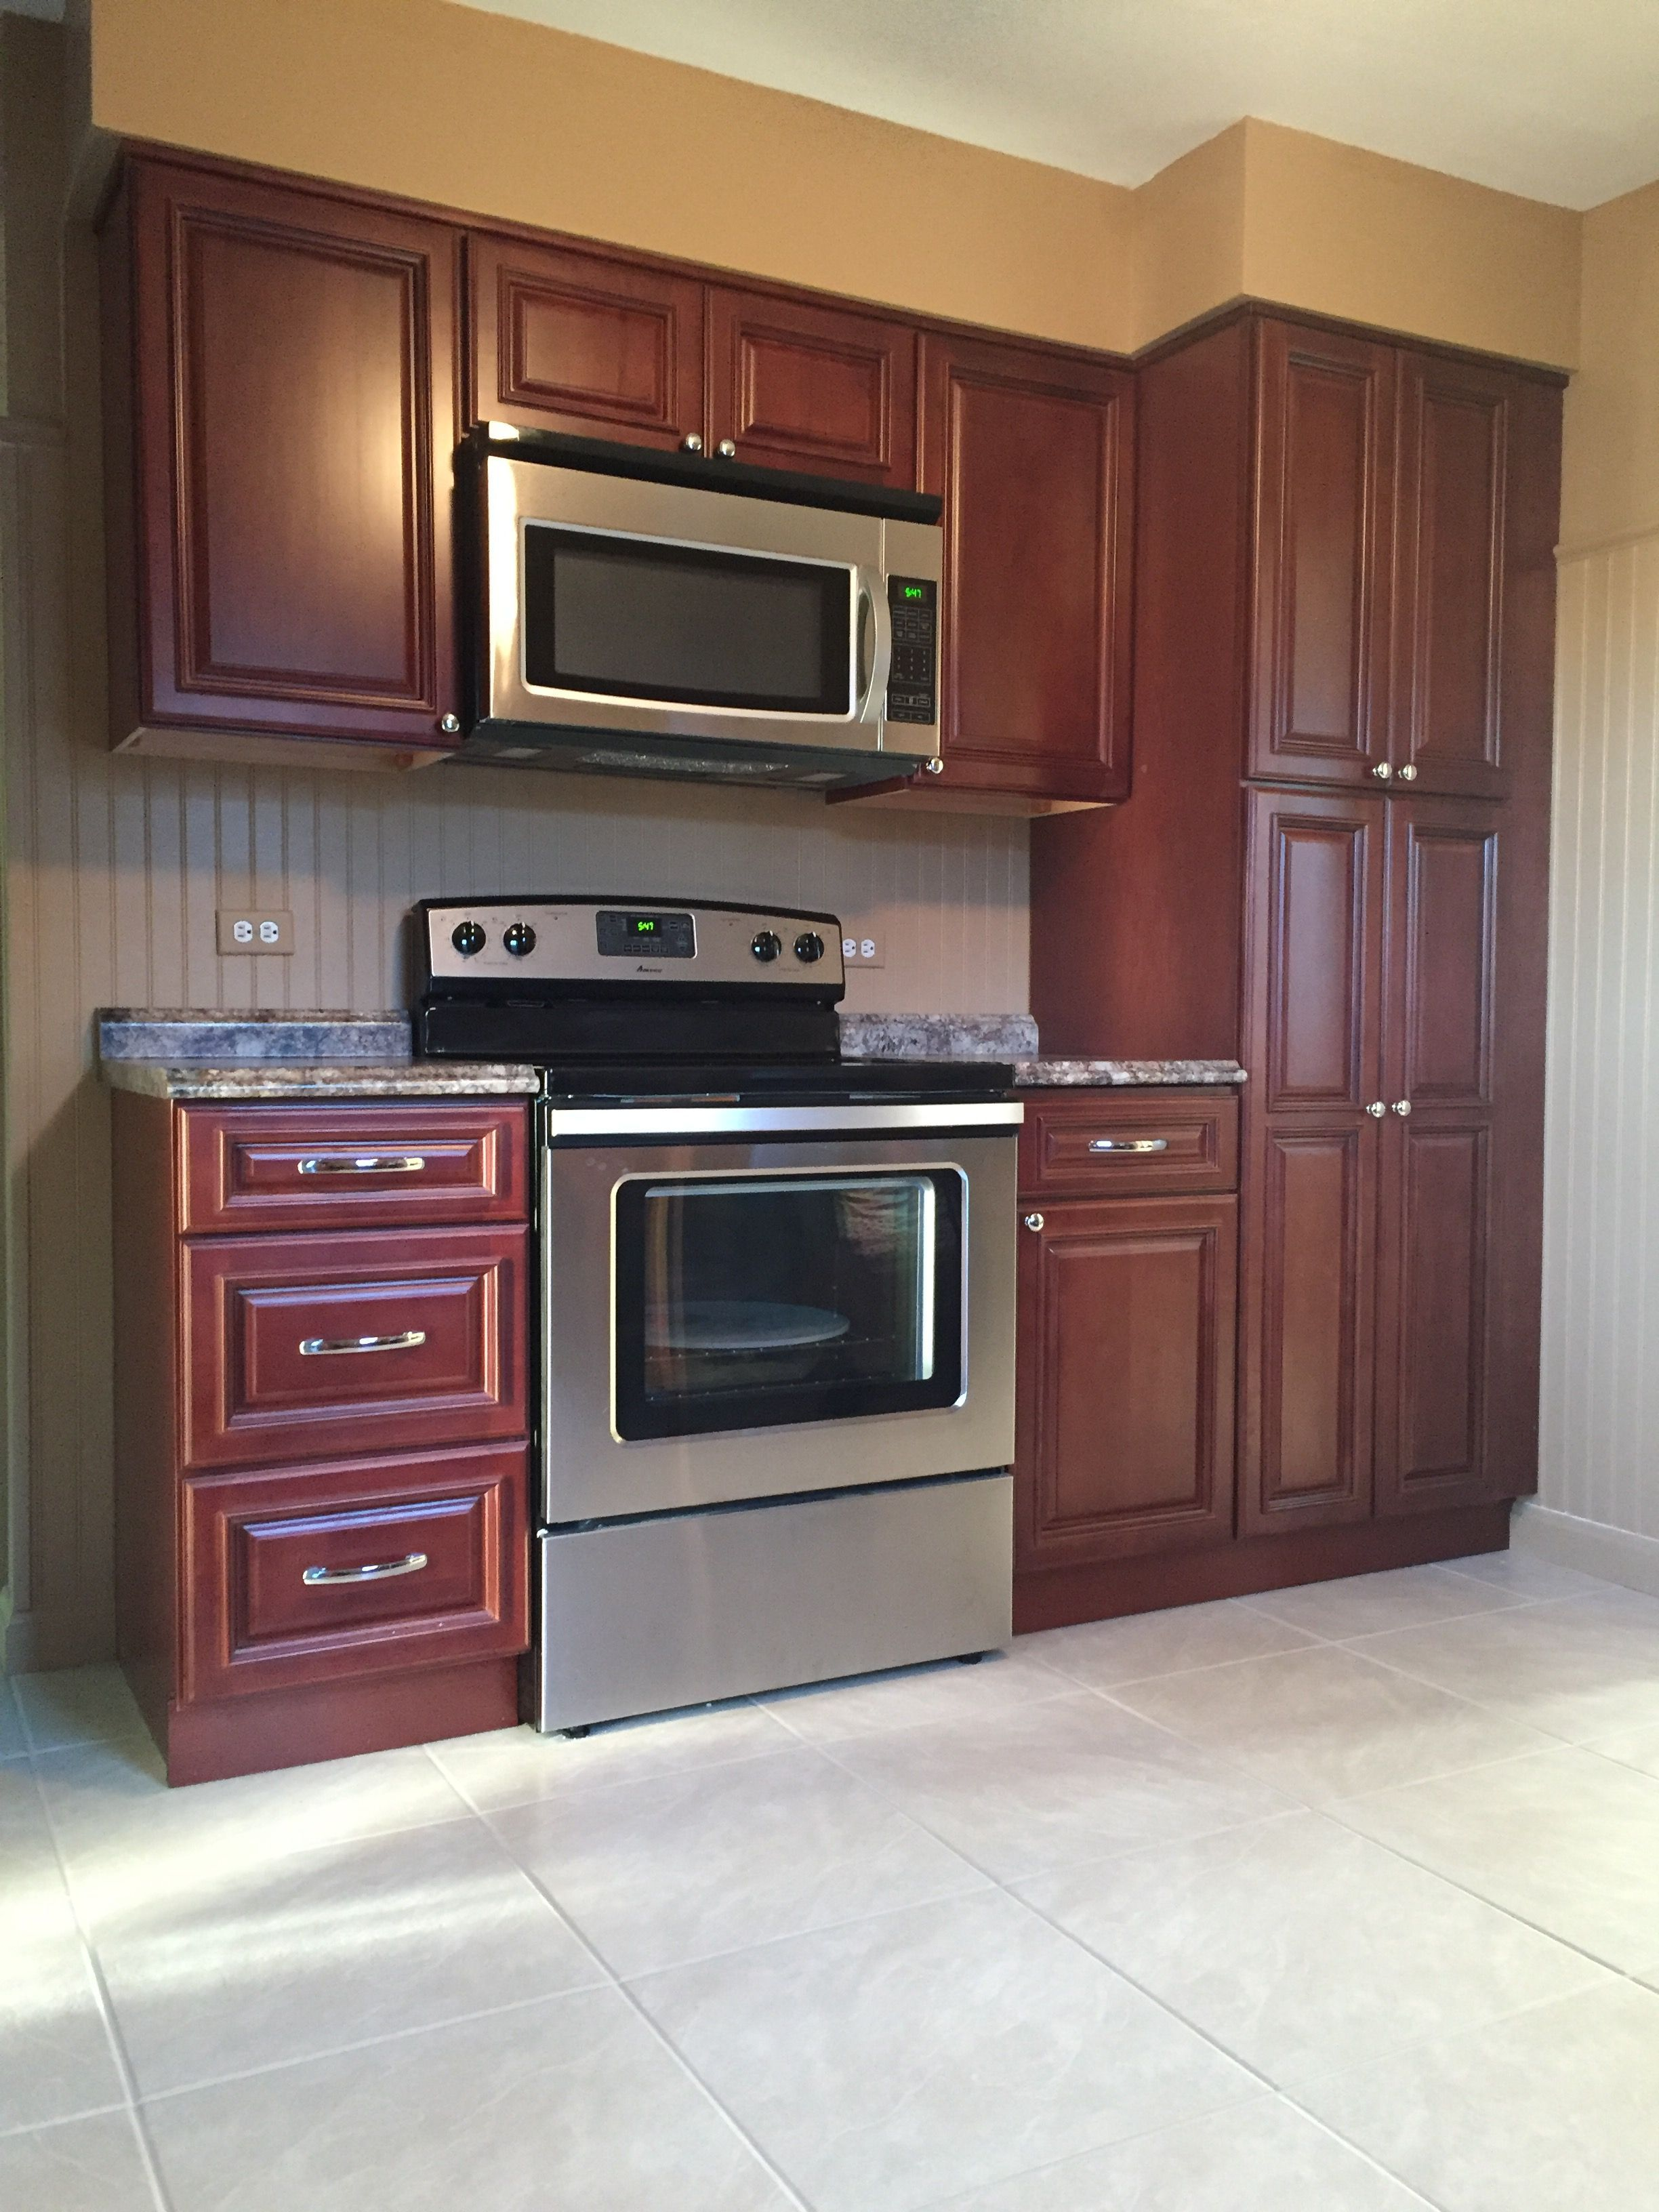 kitchen remodel by elizabeth d. of erie, pa. we have a fresh, new